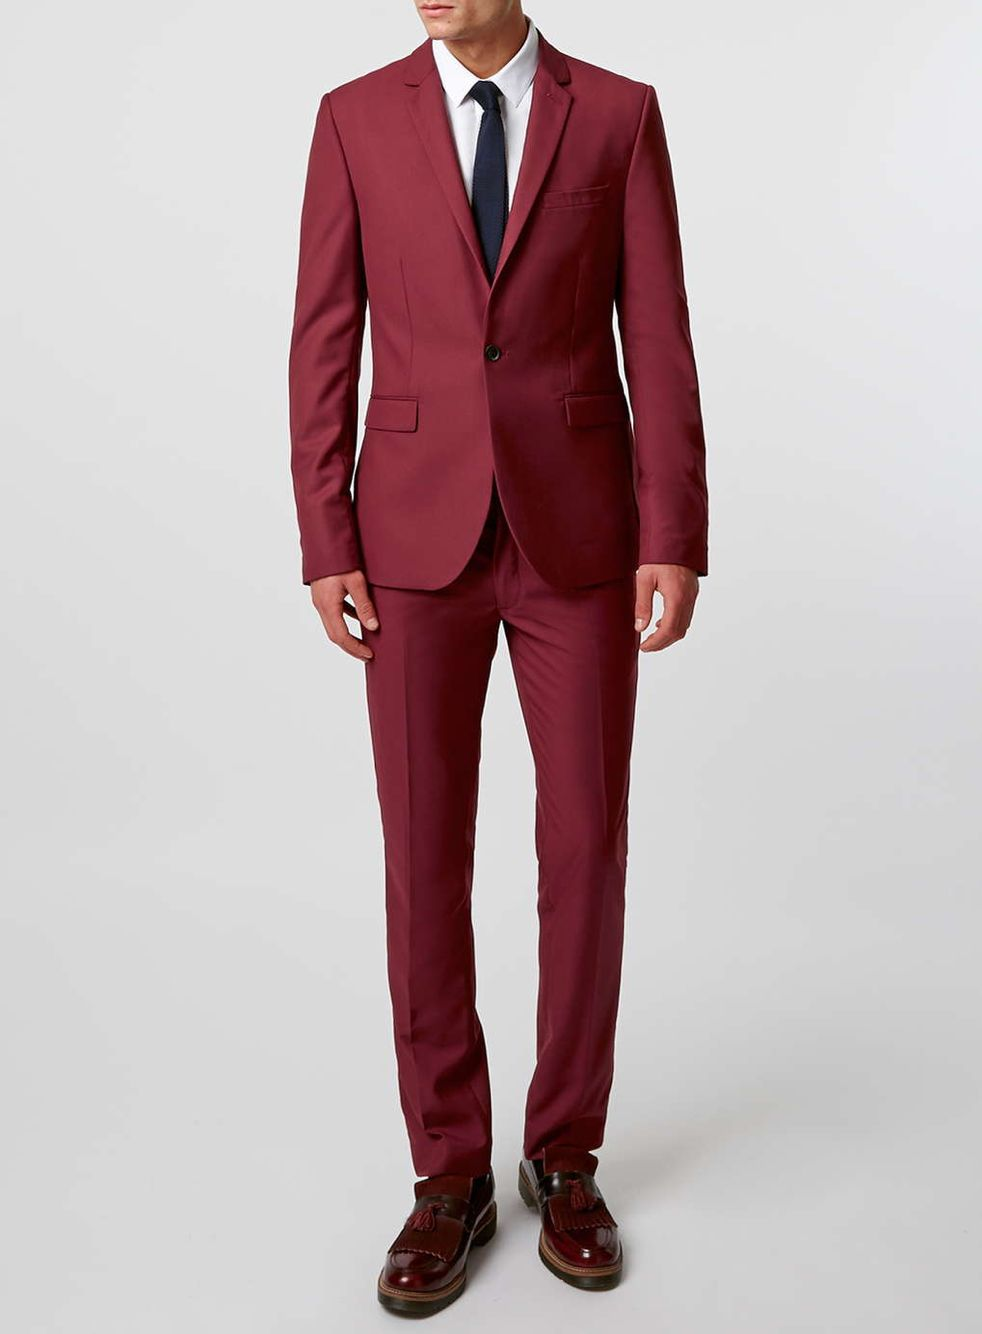 Topman Burgundy Maroon Red Suit Burgundy Suit Suits Grey Suit Shoes